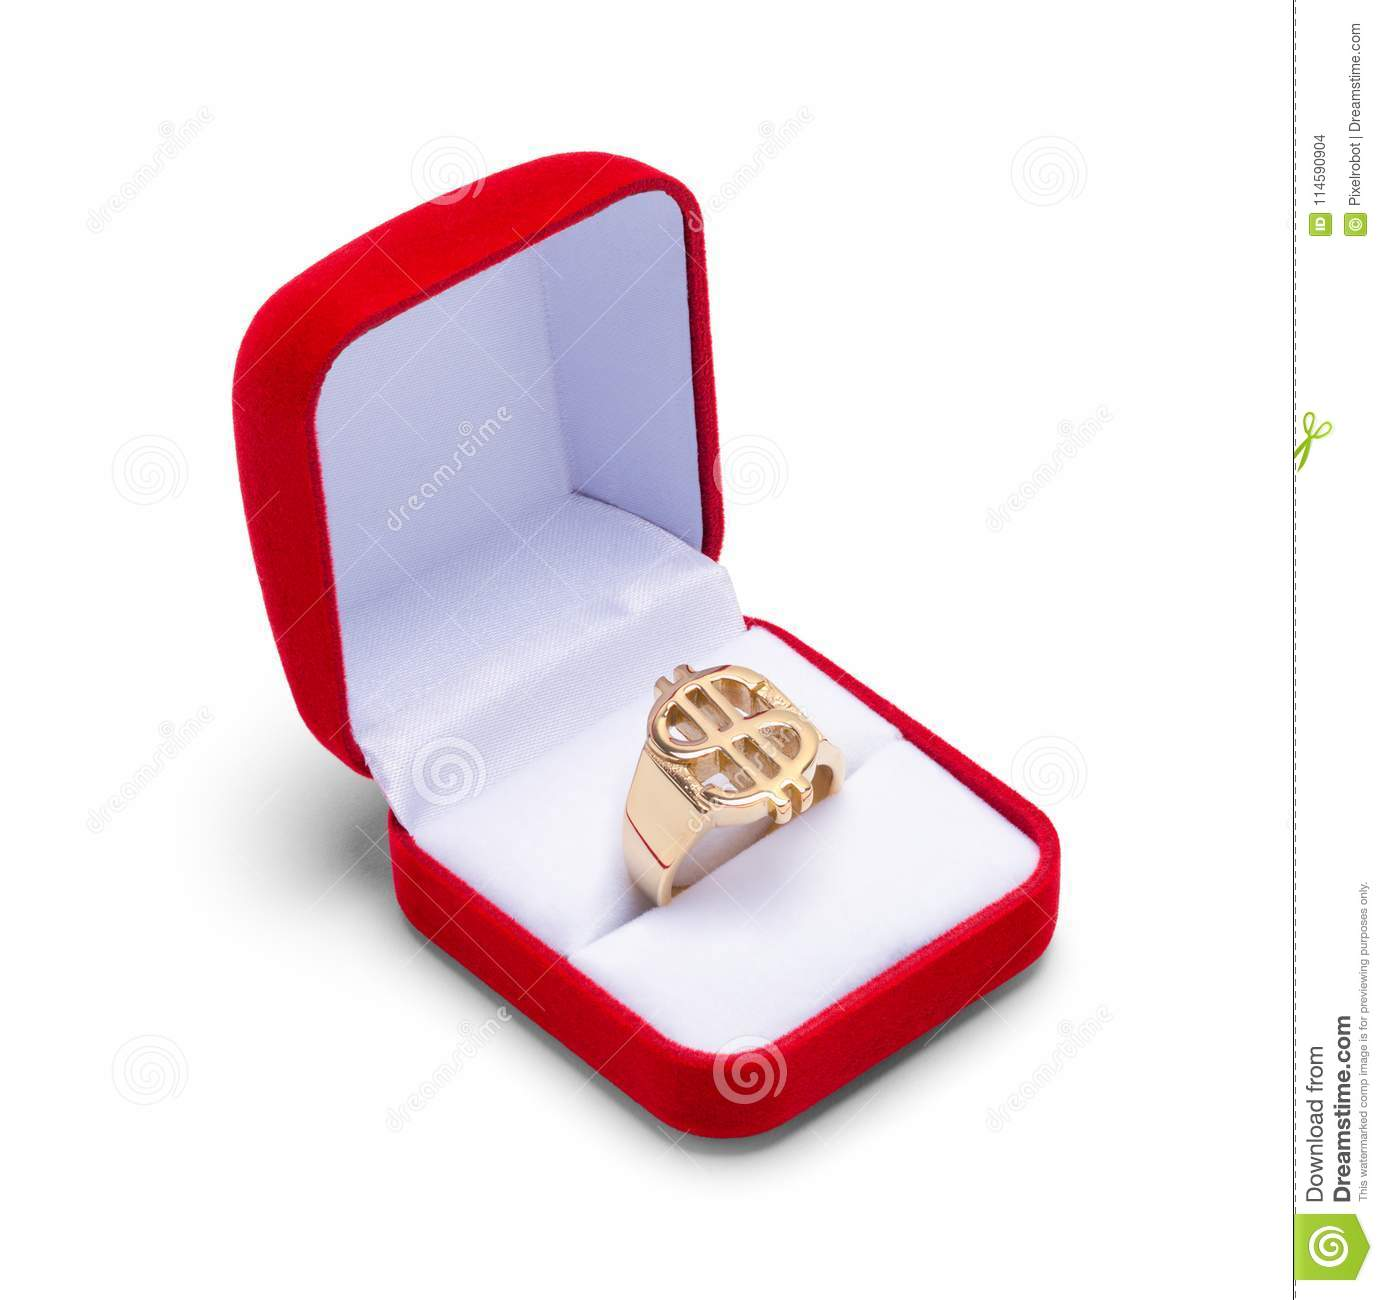 d47a15e46 Open Jewelry Box With Money Ring Stock Photo - Image of white, cash ...